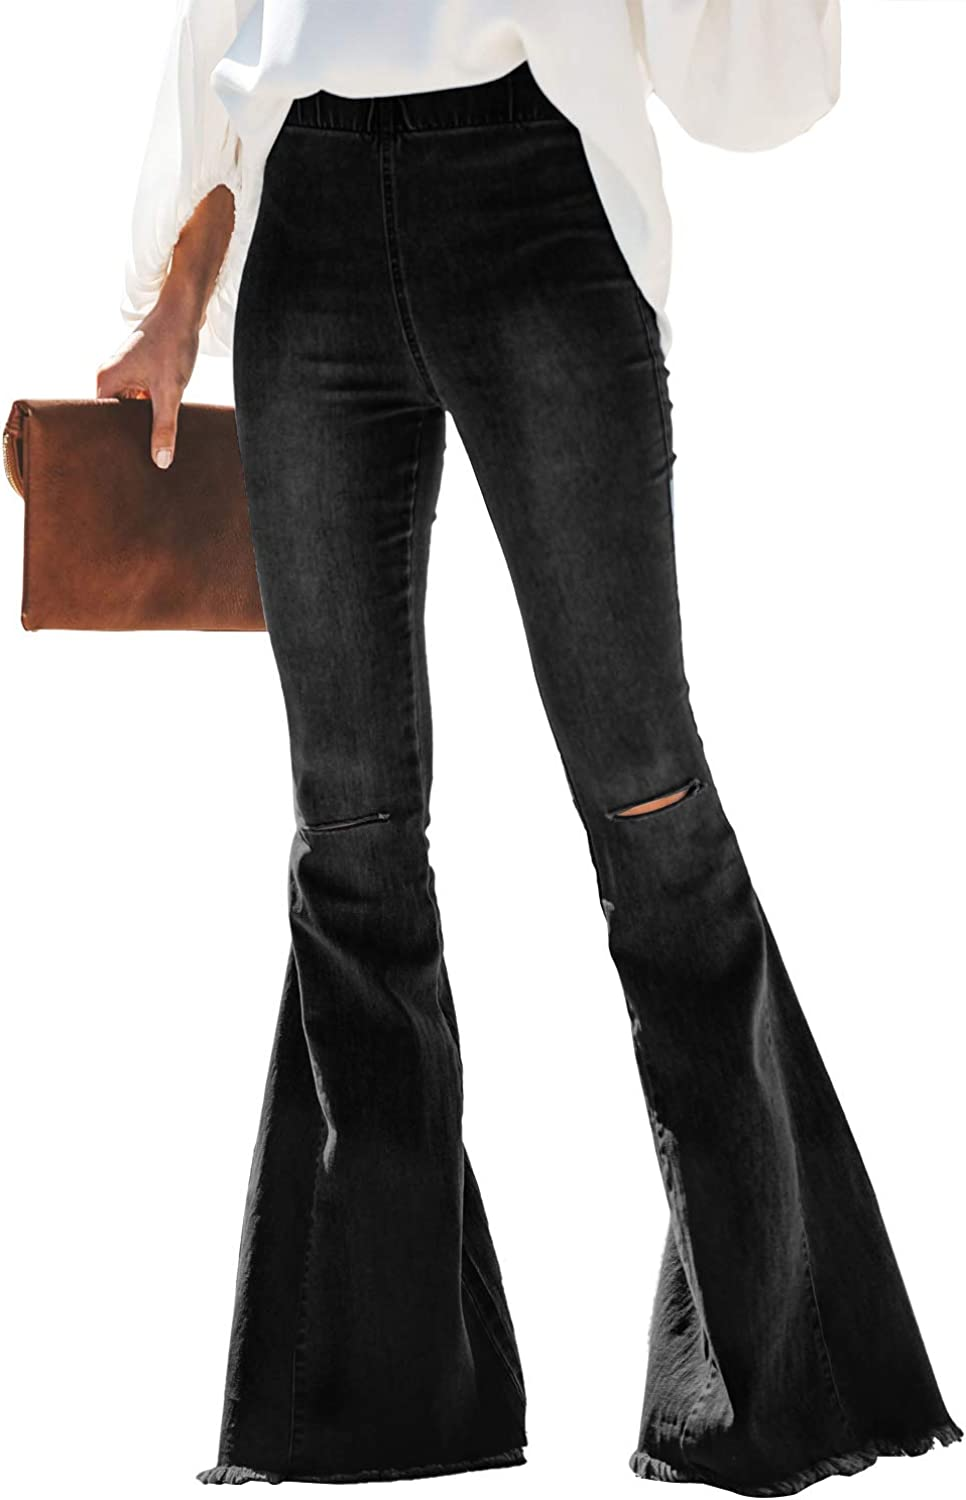 Shawhuwa Womens Denim Pants Jeans Stretch Bell Bottom Flared Jeans Destroyed Skinny Ripped Pants